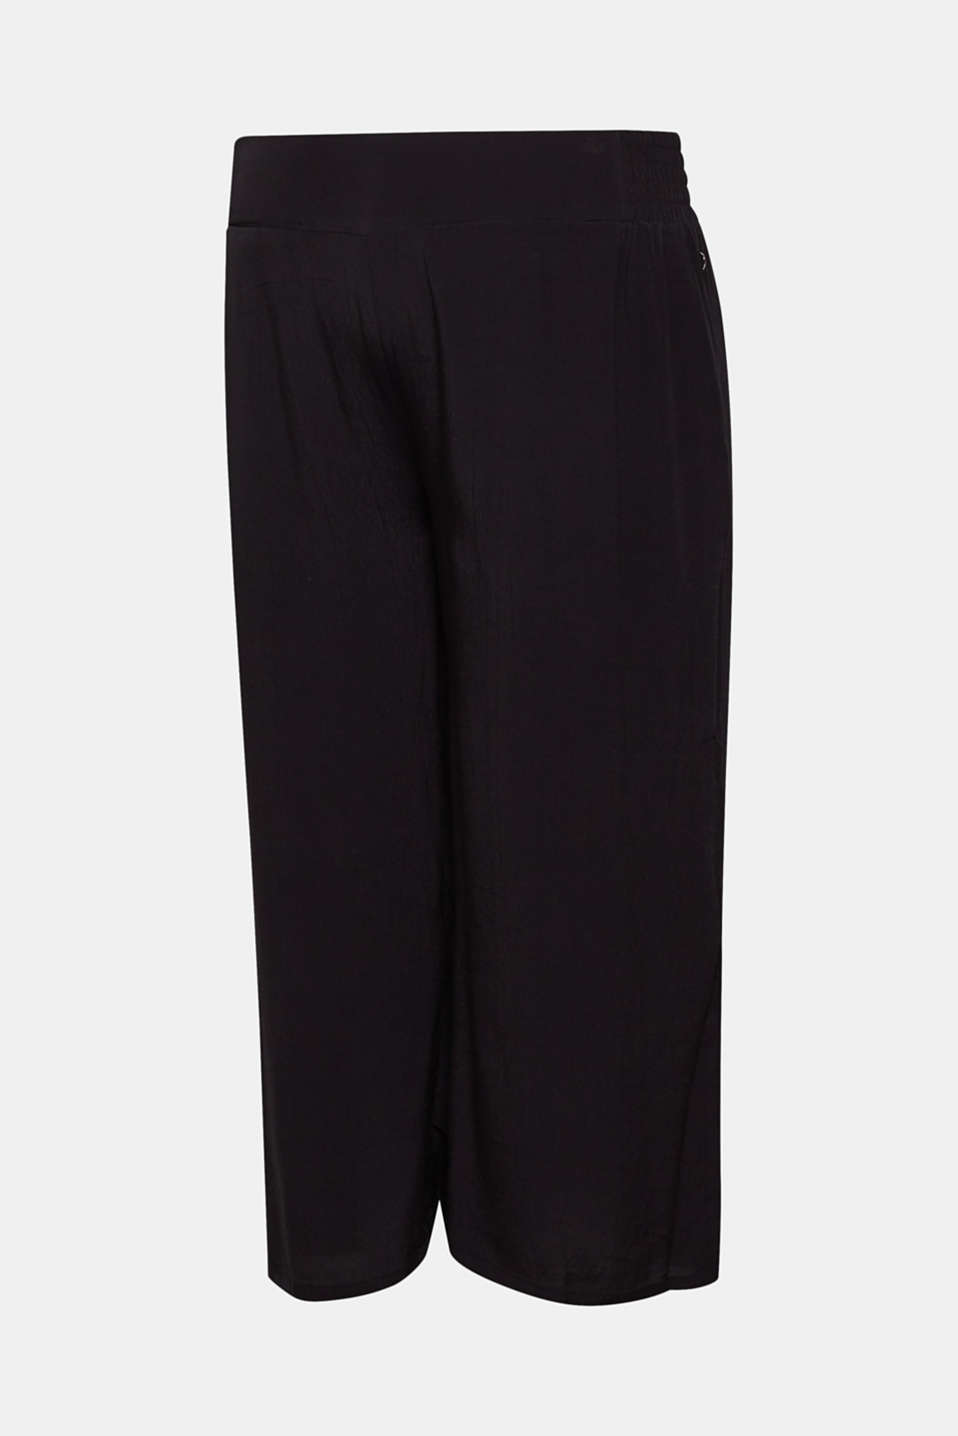 Crêpe culottes with an under-bump waistband, LCBLACK, detail image number 5